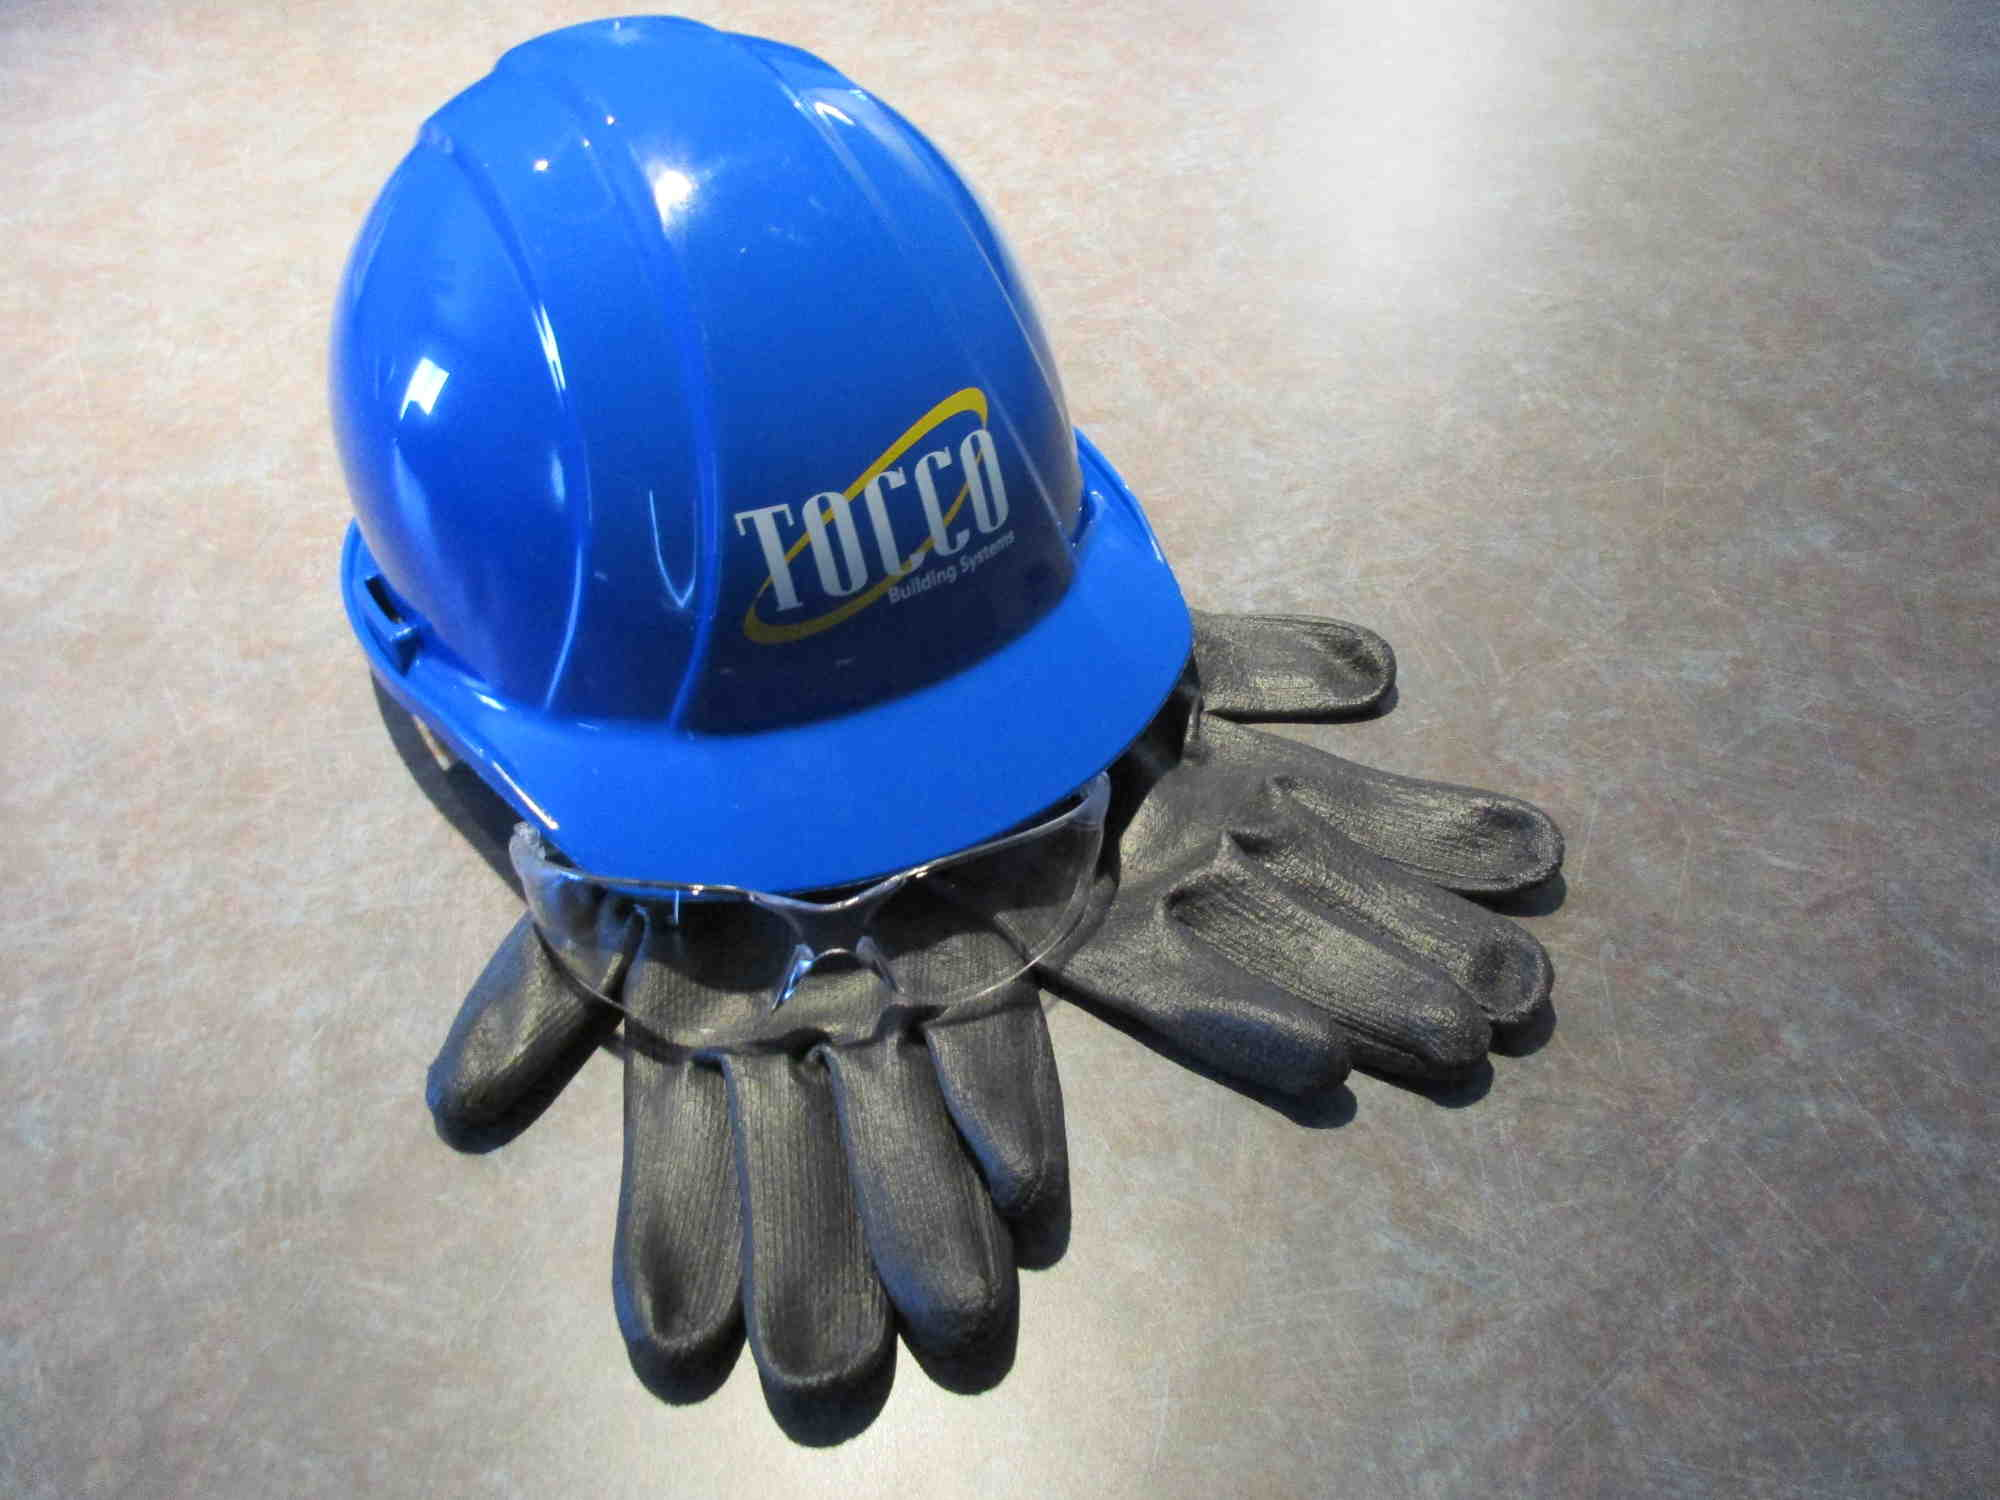 TOCCO Personal Protective Equipment